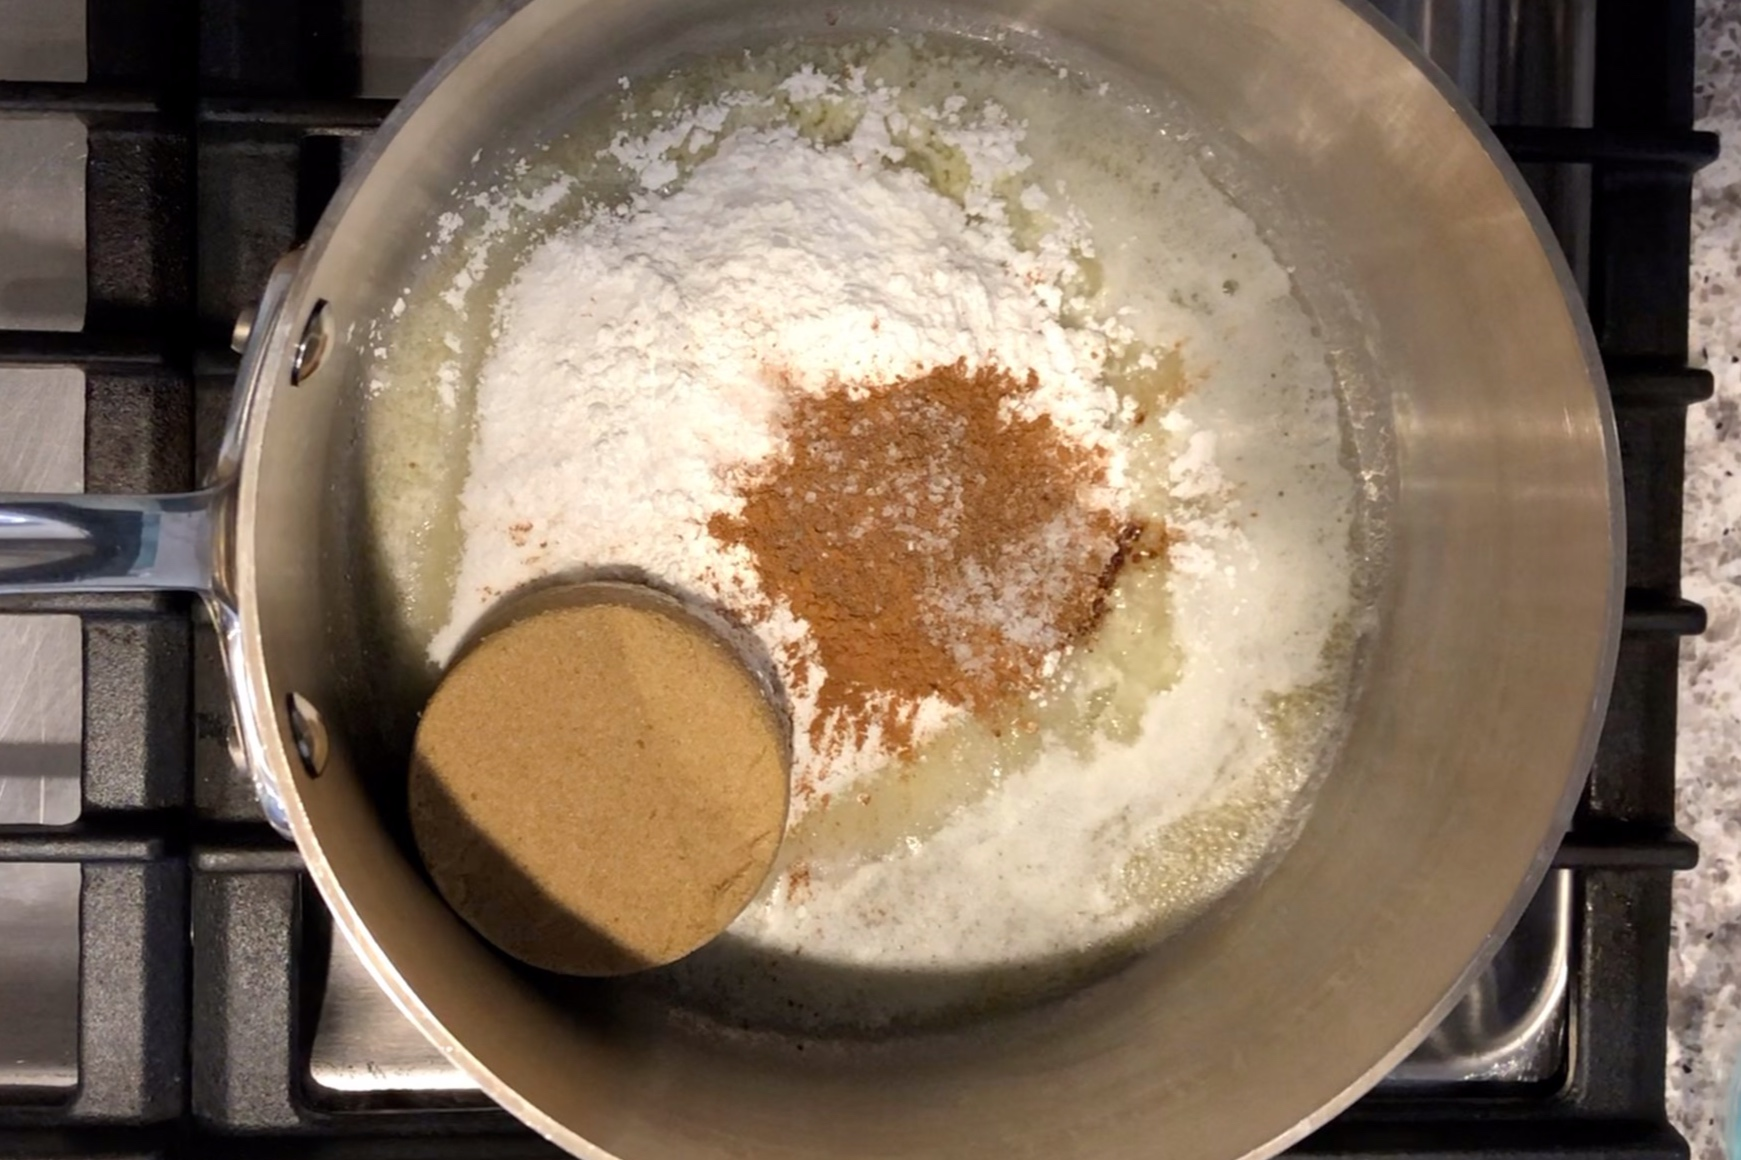 3. Add the sugar, brown sugar, cornstarch, cinnamon, nutmeg and salt. Mix until combined. -